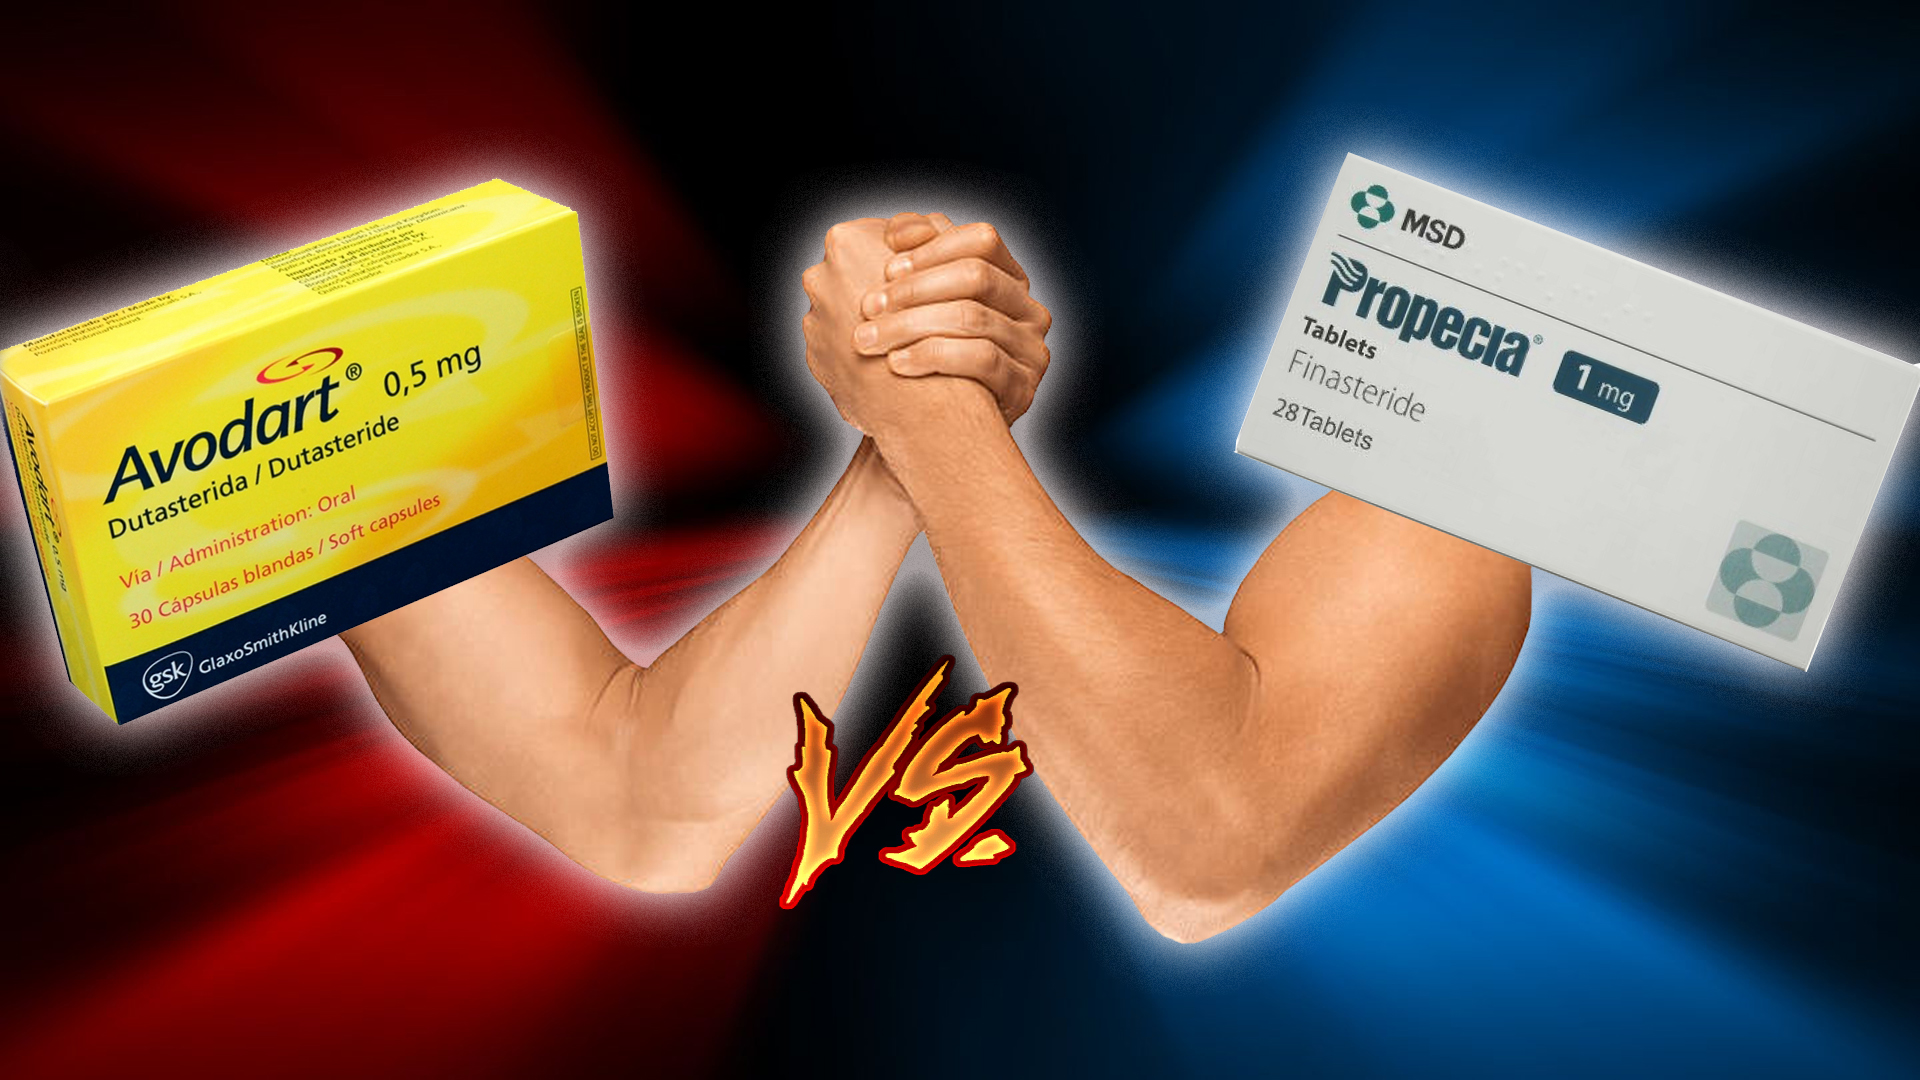 Avodart Dutasteride Vs Propecia Finasteride in arm wrestling, does Dutasteride increase testosterone